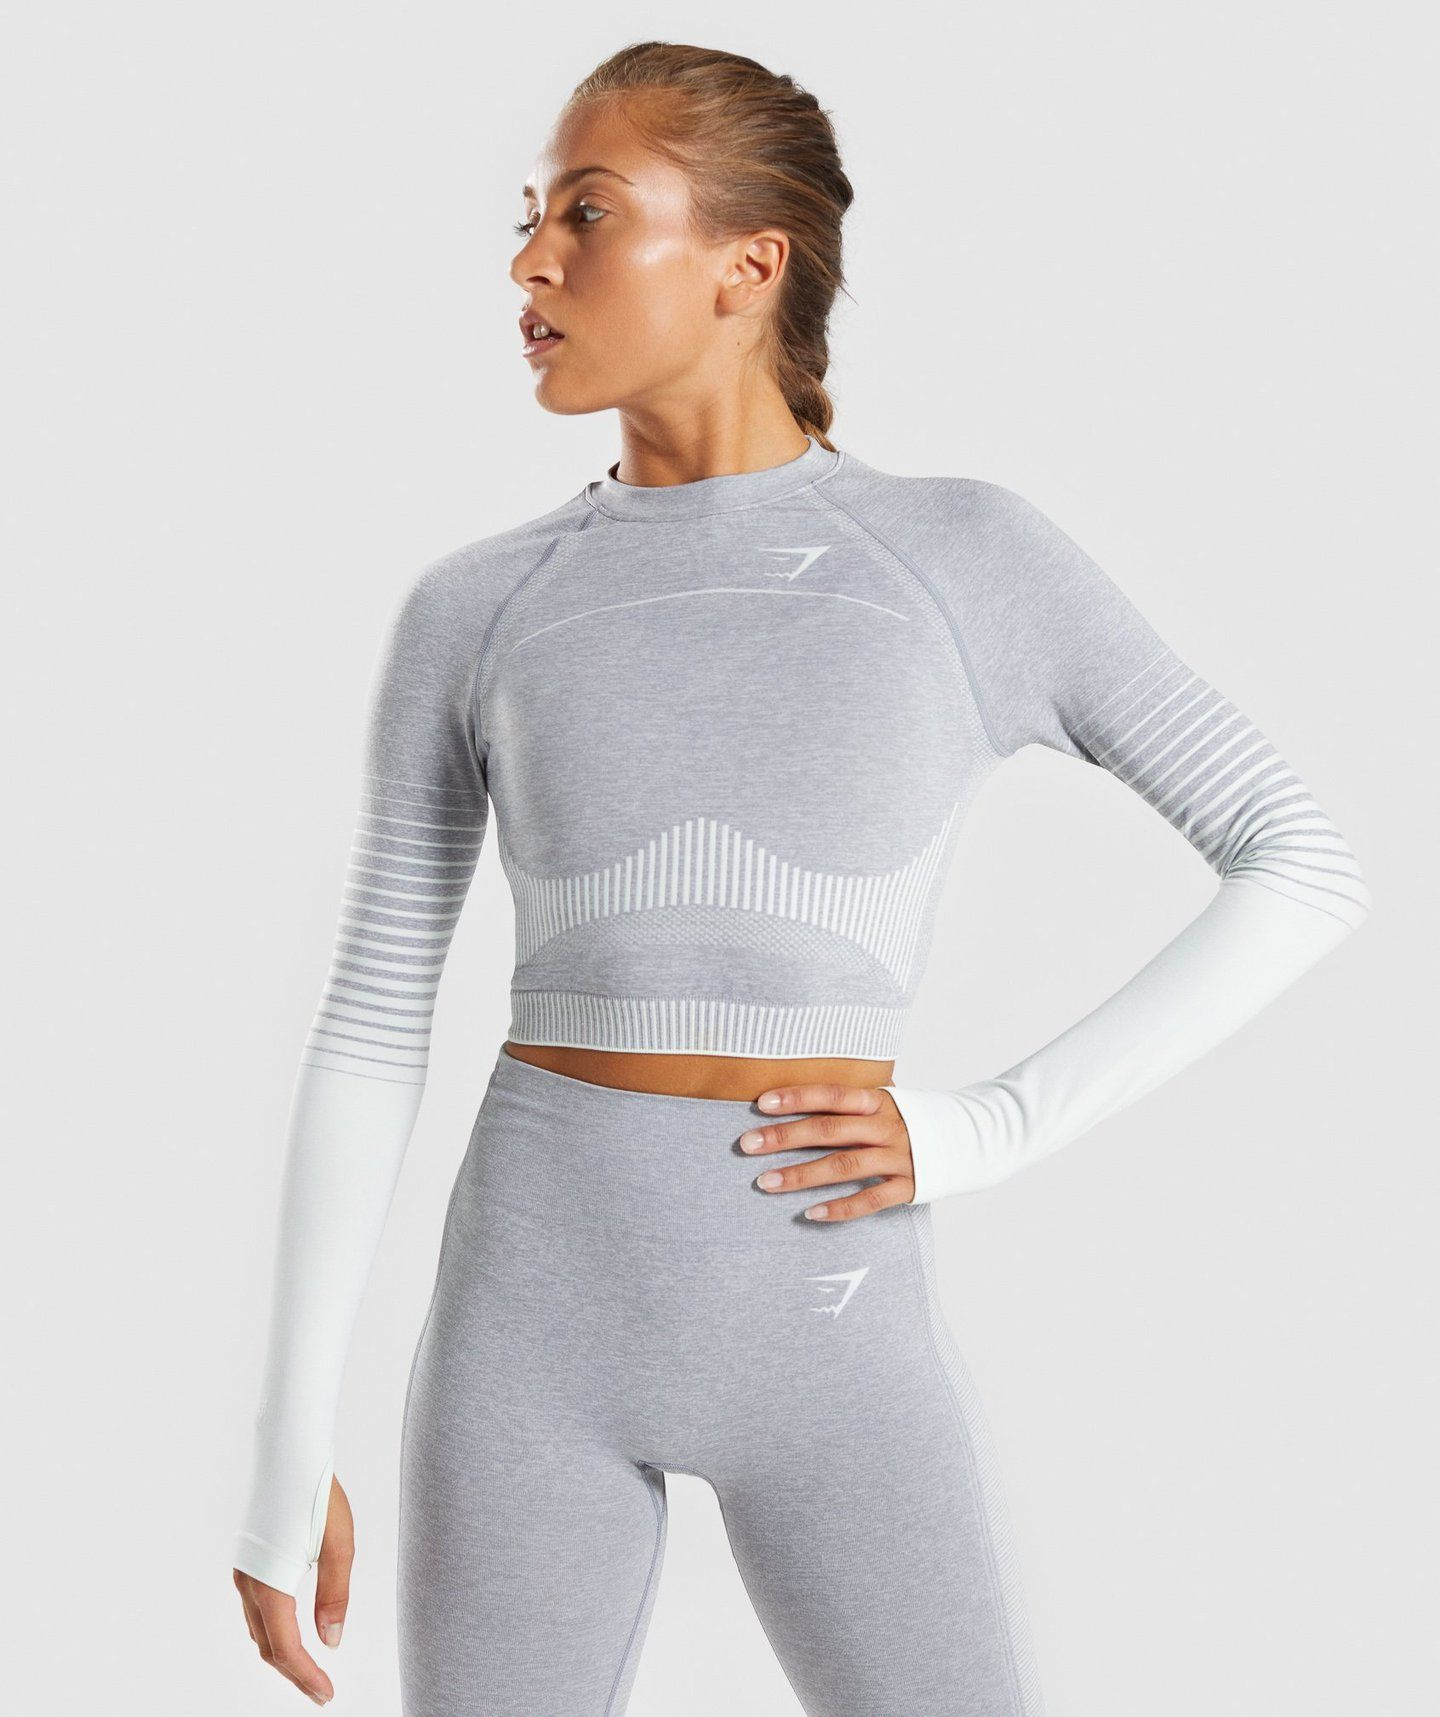 762fc0ddef0796 Gymshark Amplify Seamless Long Sleeve Crop Top - Light Grey Marl/Sea Green 4